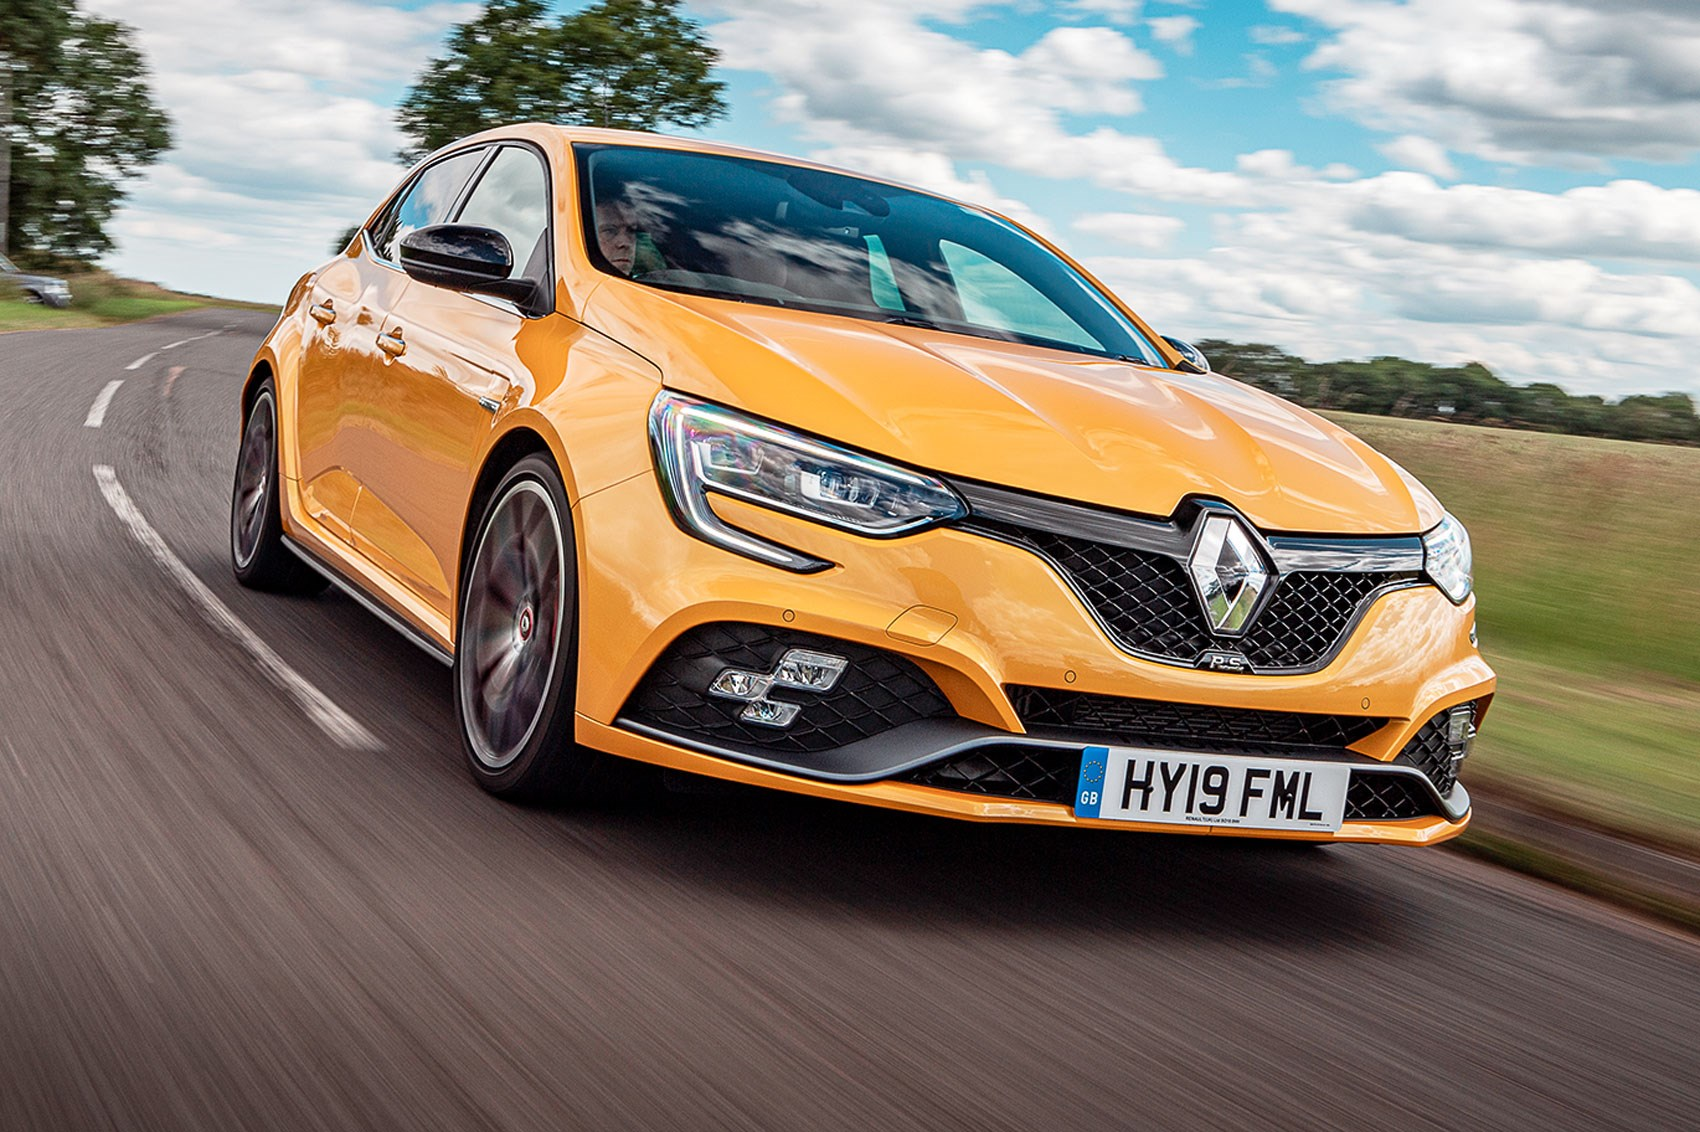 Our Megane RS Trophy: the unnatural starting to feel natural